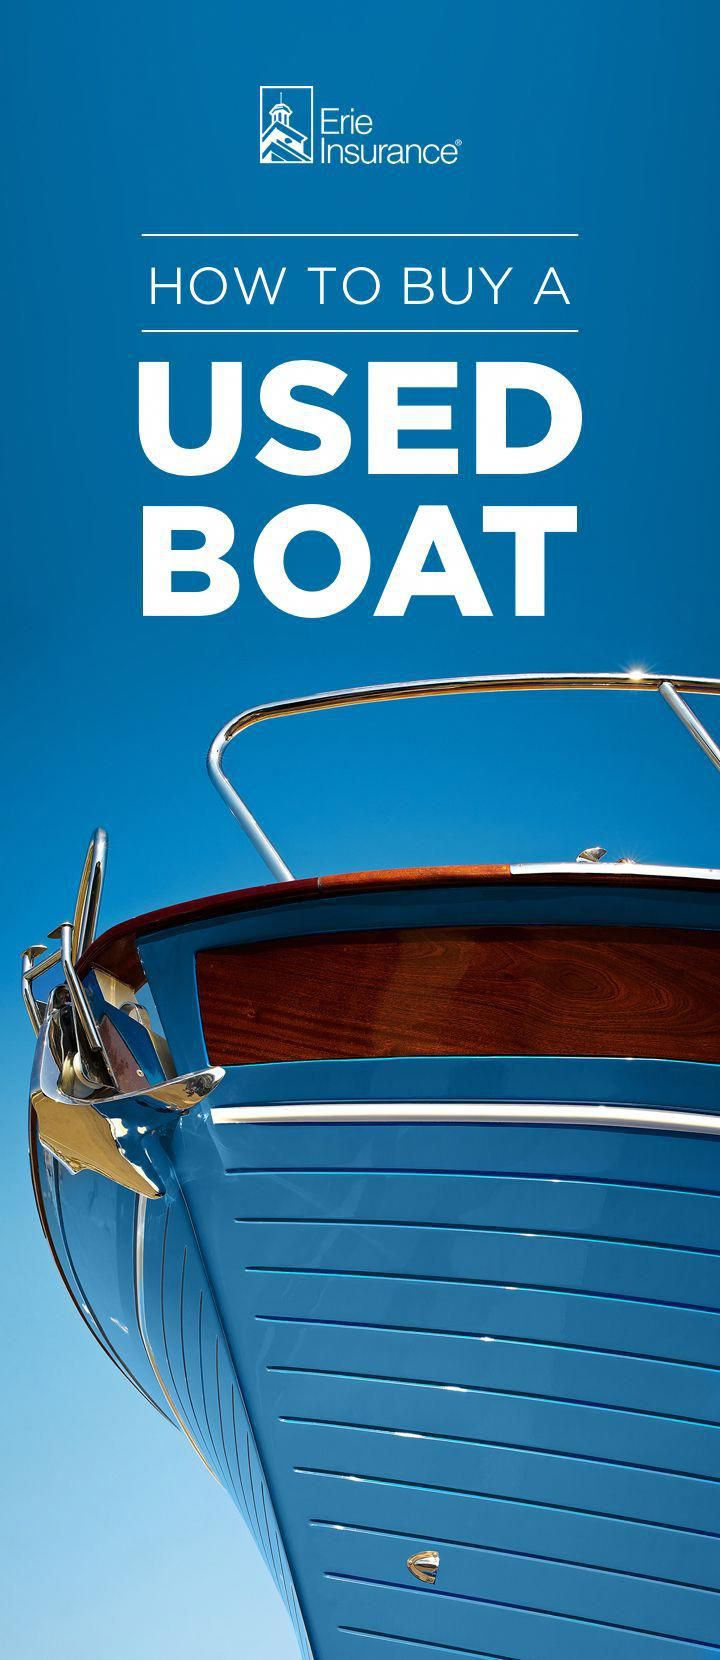 A boat can provide you and your family with years of